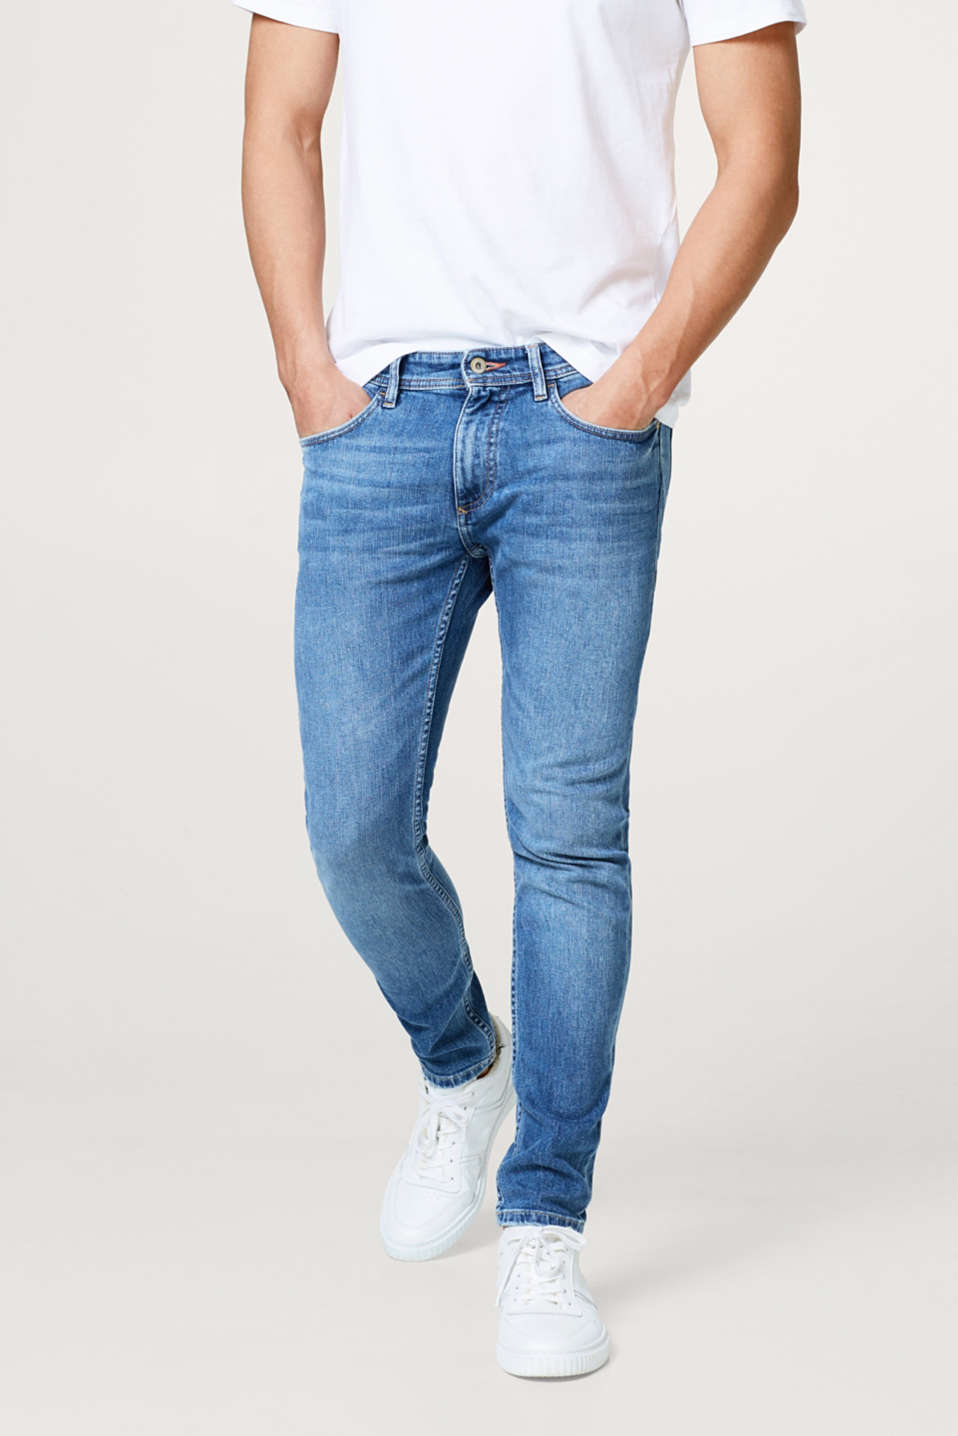 edc - Stretch jeans with an extremely slim fit